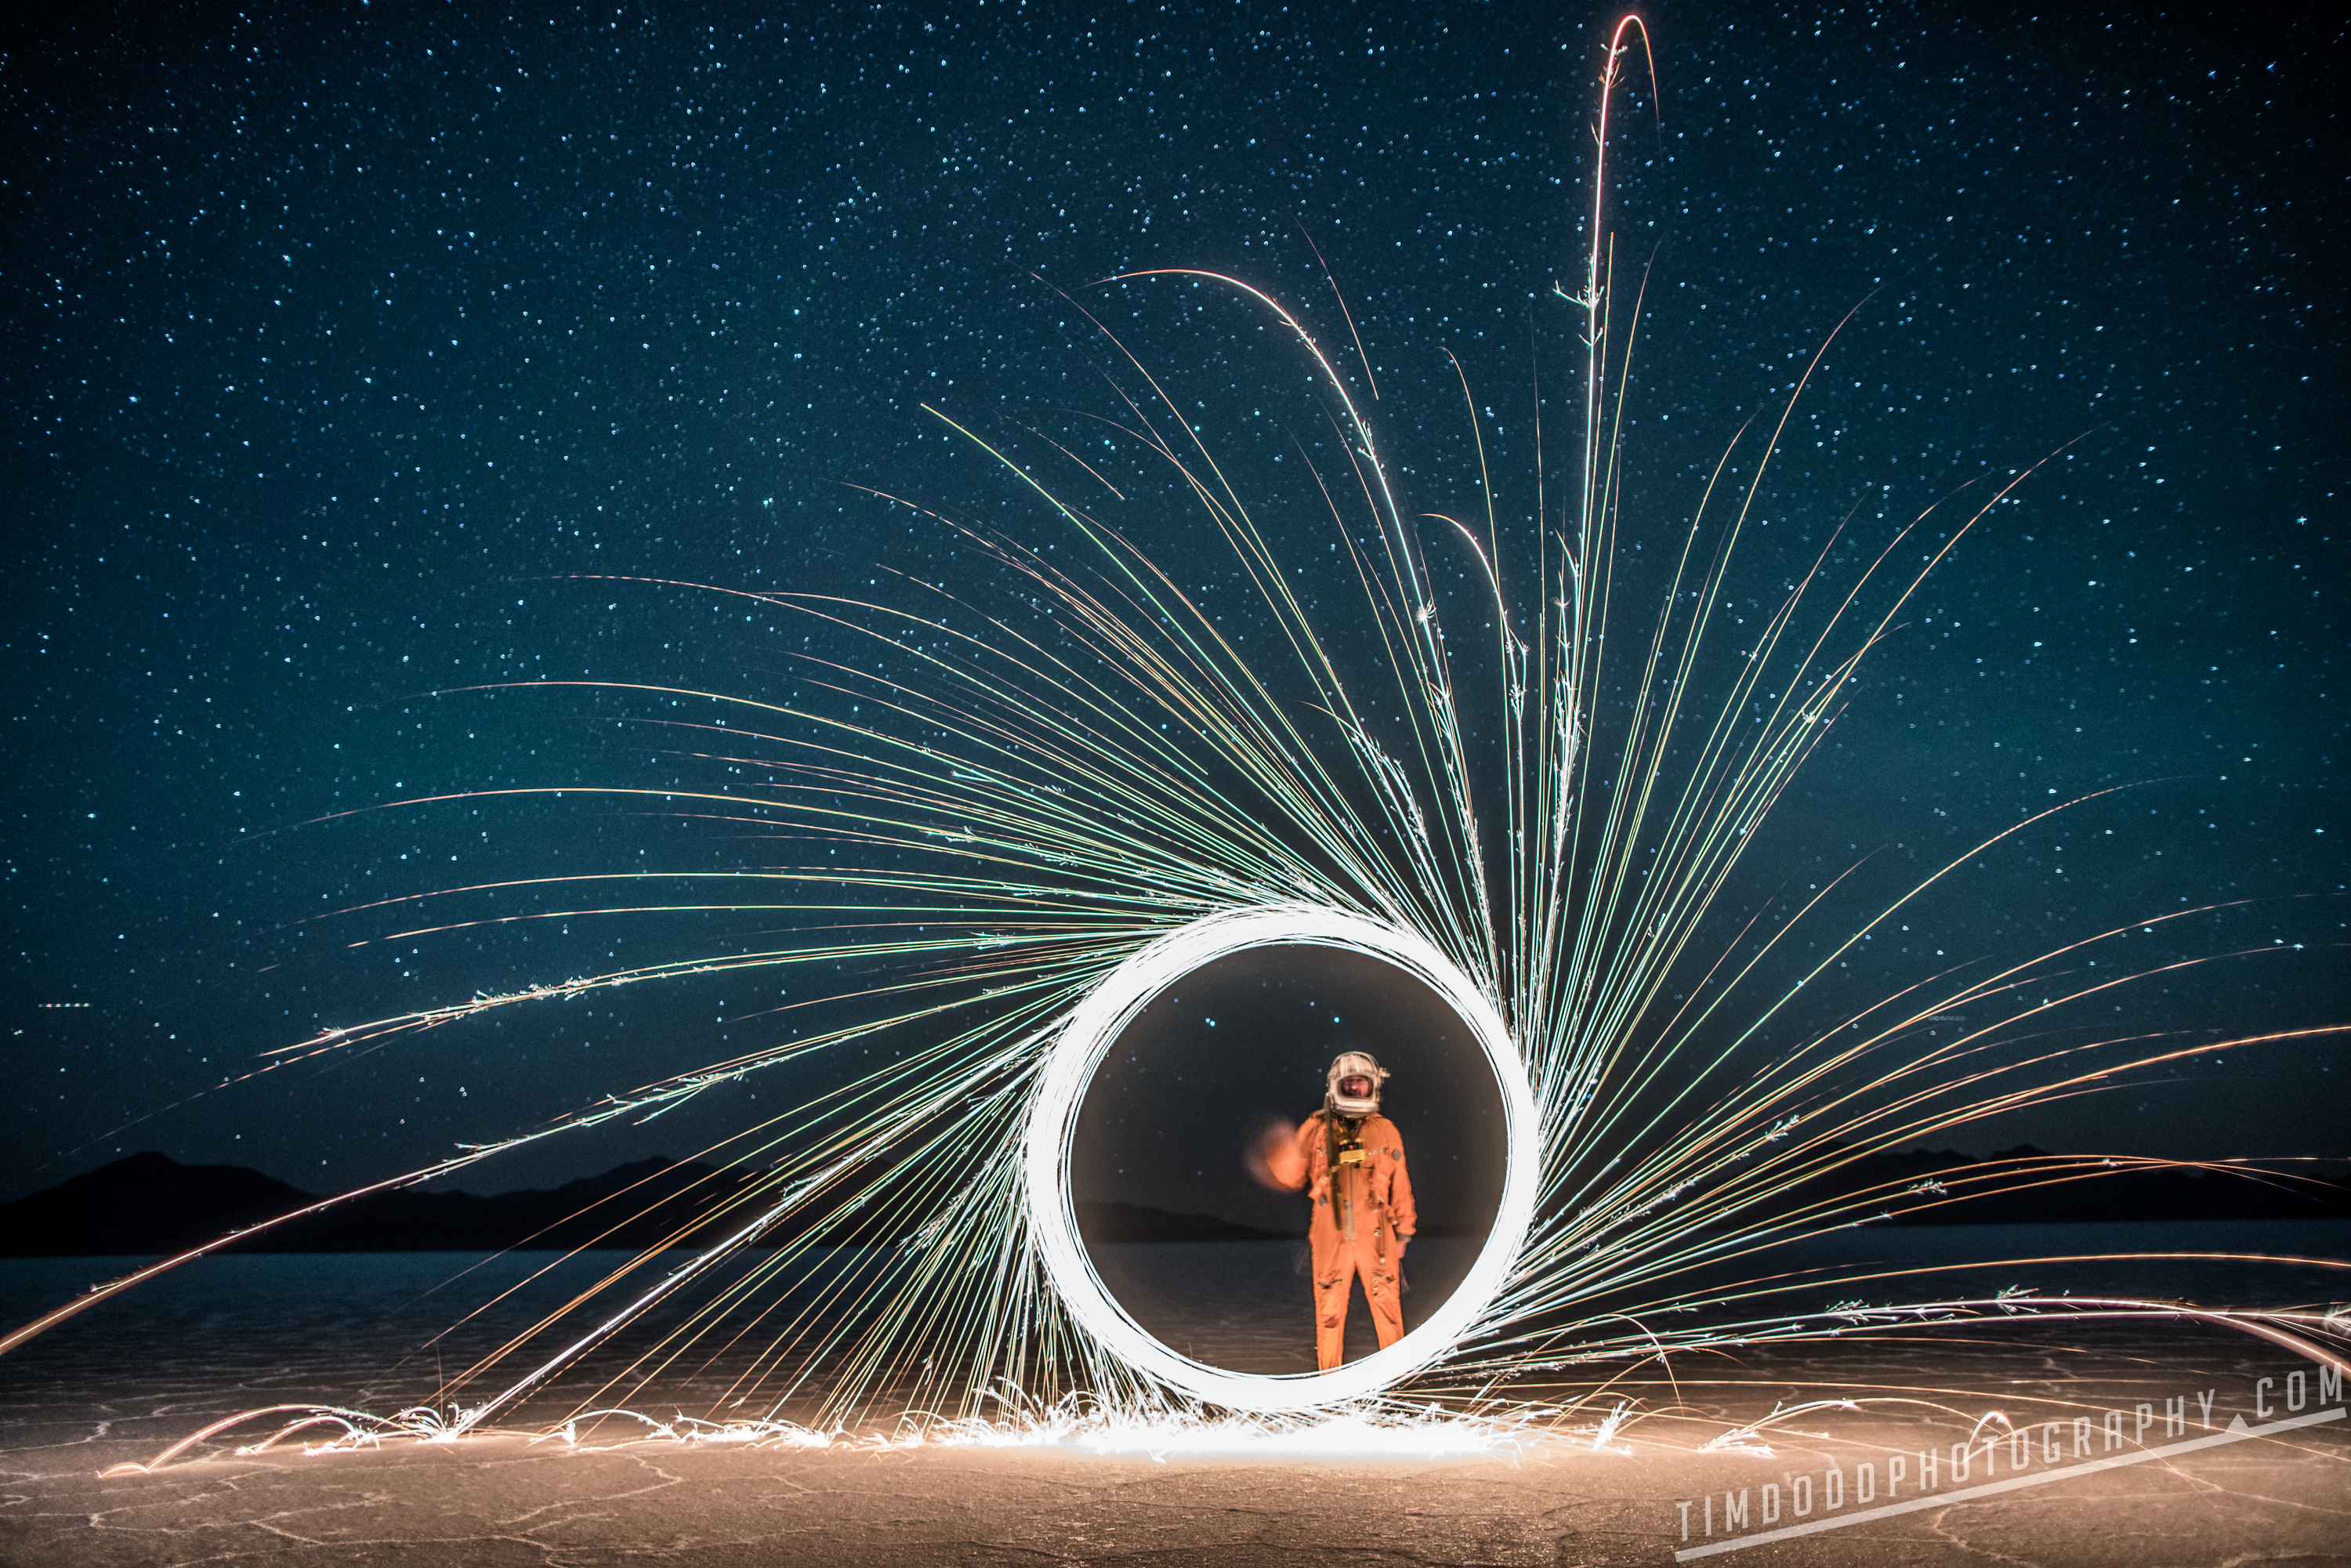 Bonneville salt flats everyday astronaut space suit russian reflection flooded utah instagram night stars milky way galaxy astrophotography long exposure